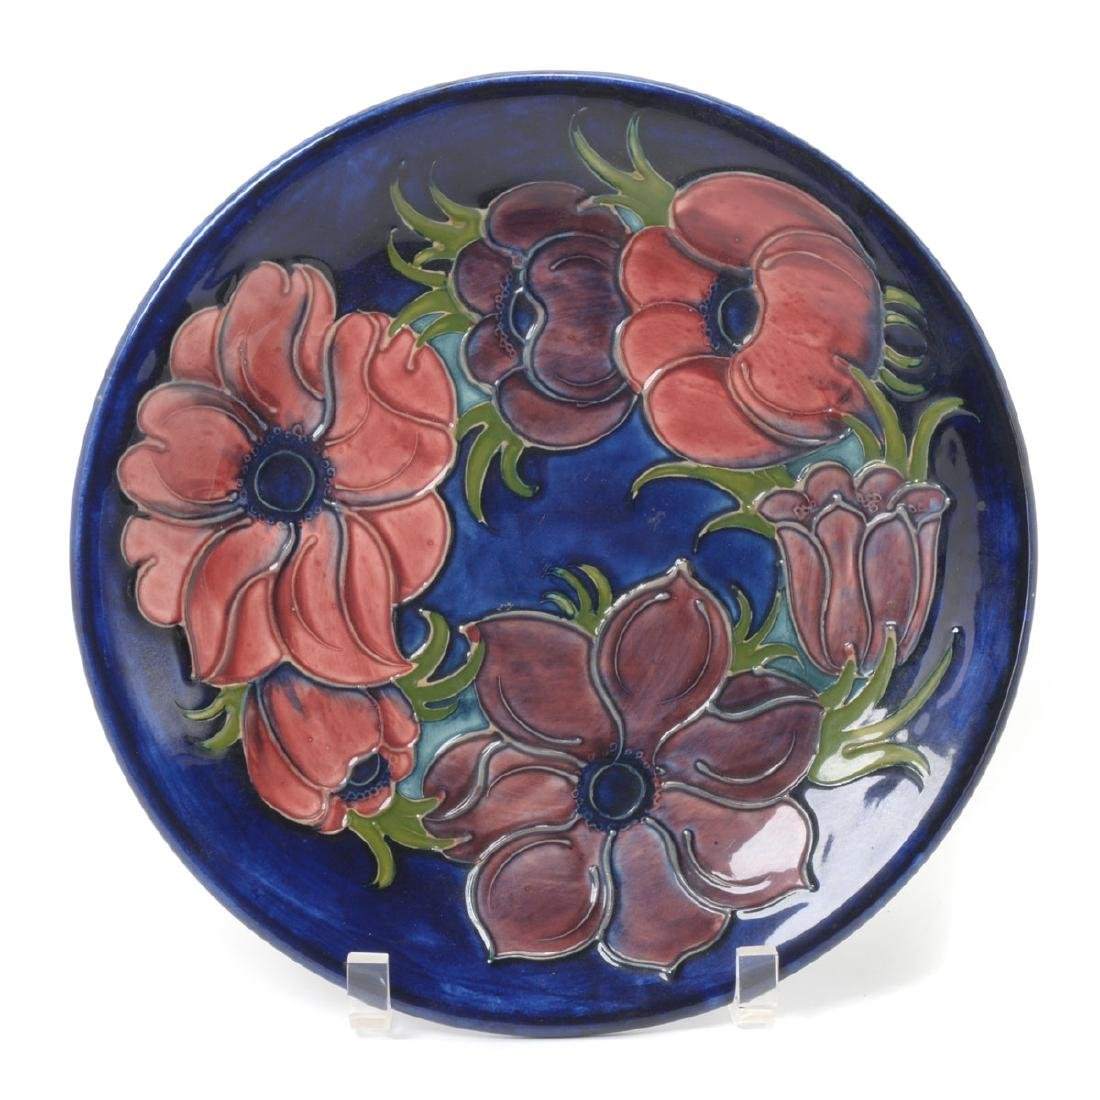 Moorcroft Blue Ground Floral Tubelined Plate